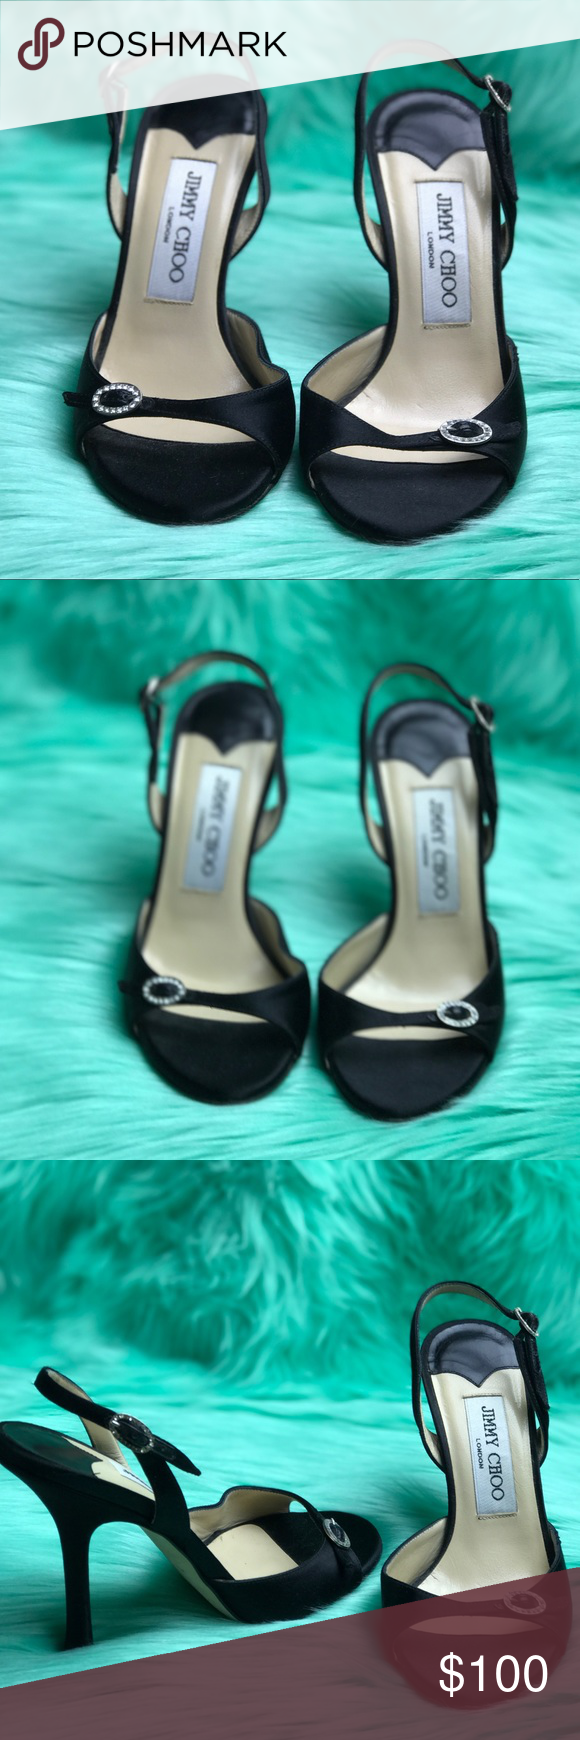 Jimmy Choo Sling back open toe shoes Black satin, sling backs with open toe. Jewels on the buckle. No obvious wear except for on the soles and heel tips. 🍭🍭🍭🍭🍭PLEASE NOTE 🍭🍭🍭THIS IS A SIZE 34 1/2,but that is not an available option so it is listed as a 5. Jimmy Choo Shoes Heels